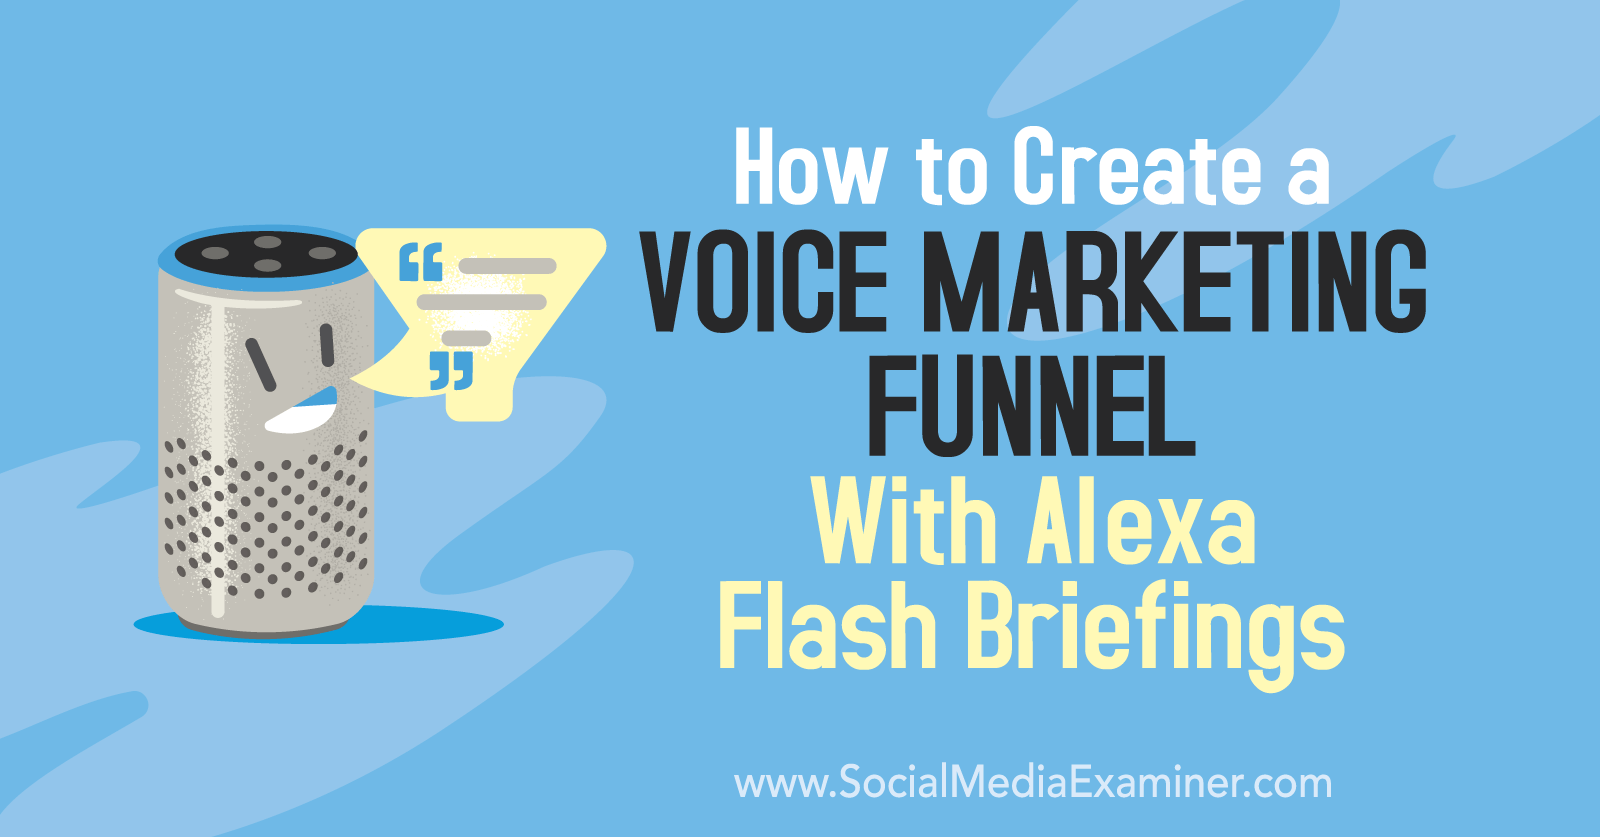 alexa-flash-briefings-voice-marketing-funnel-how-to-800@2x.png